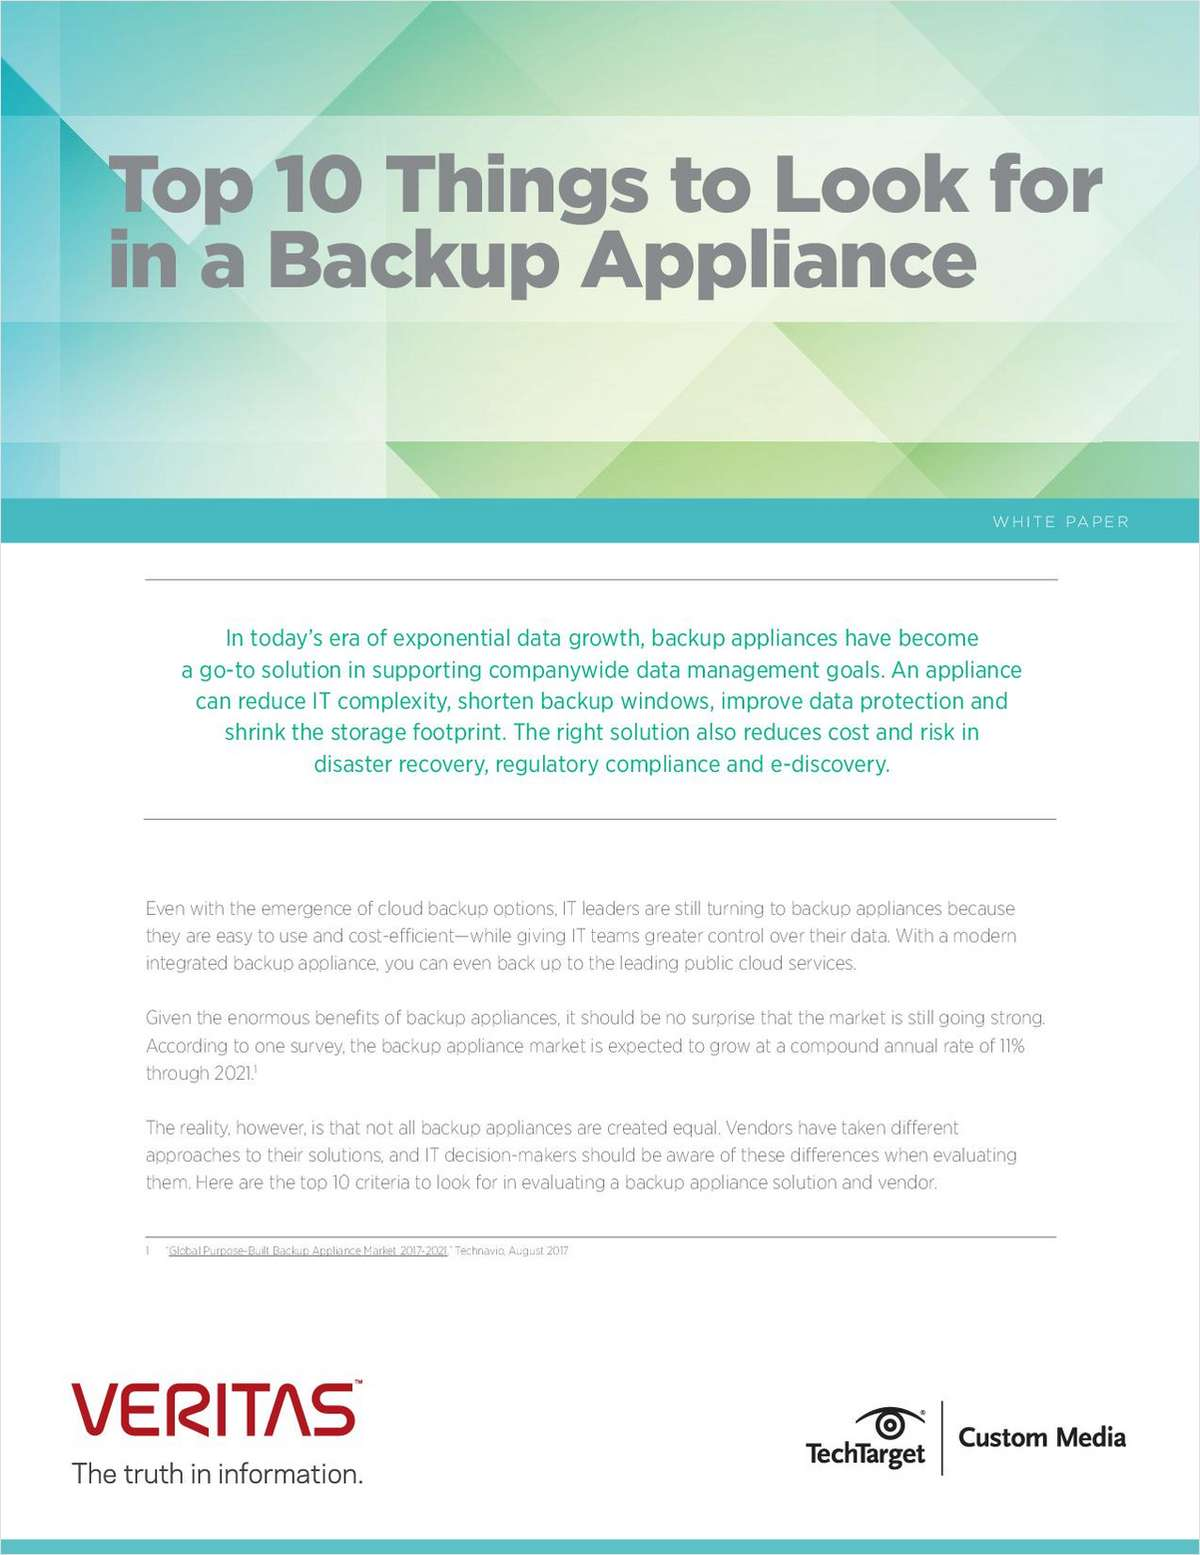 Top 10 Things to Look for in a Backup Appliance